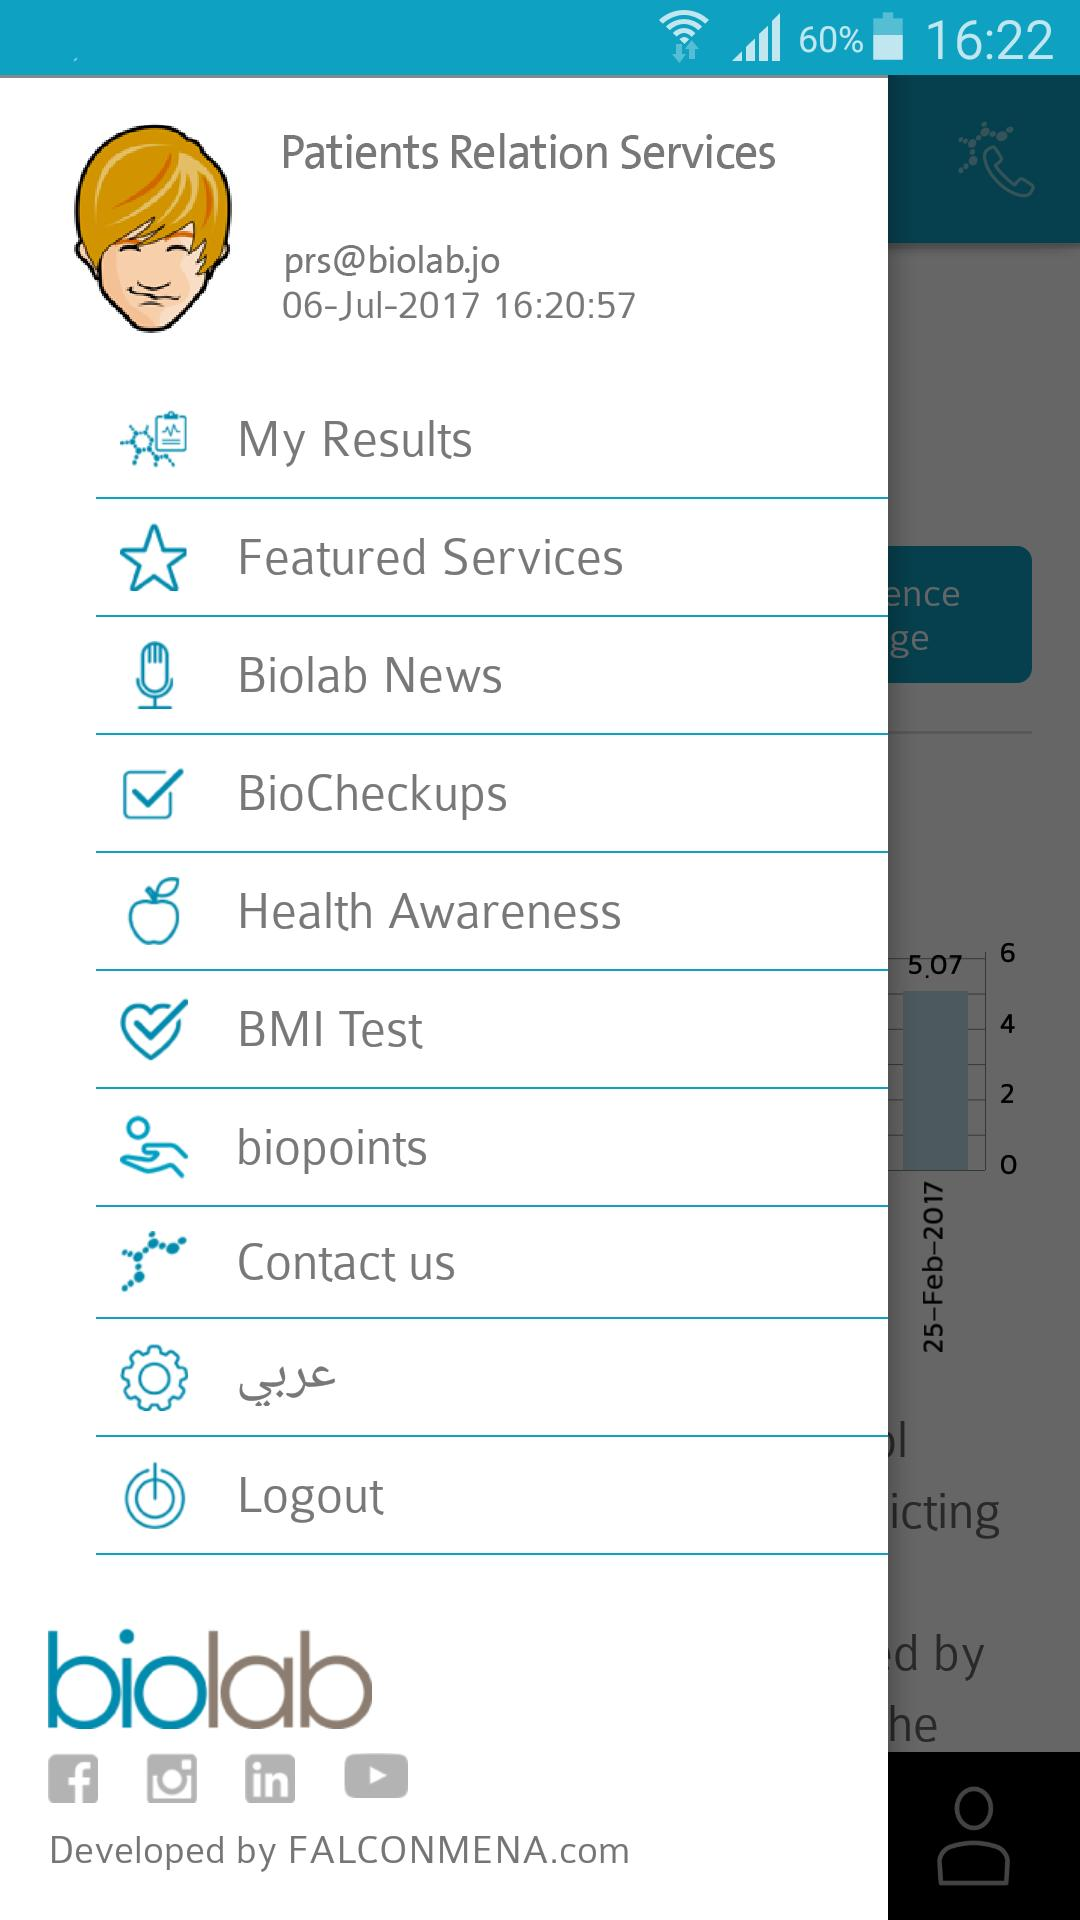 biolab for Android - APK Download